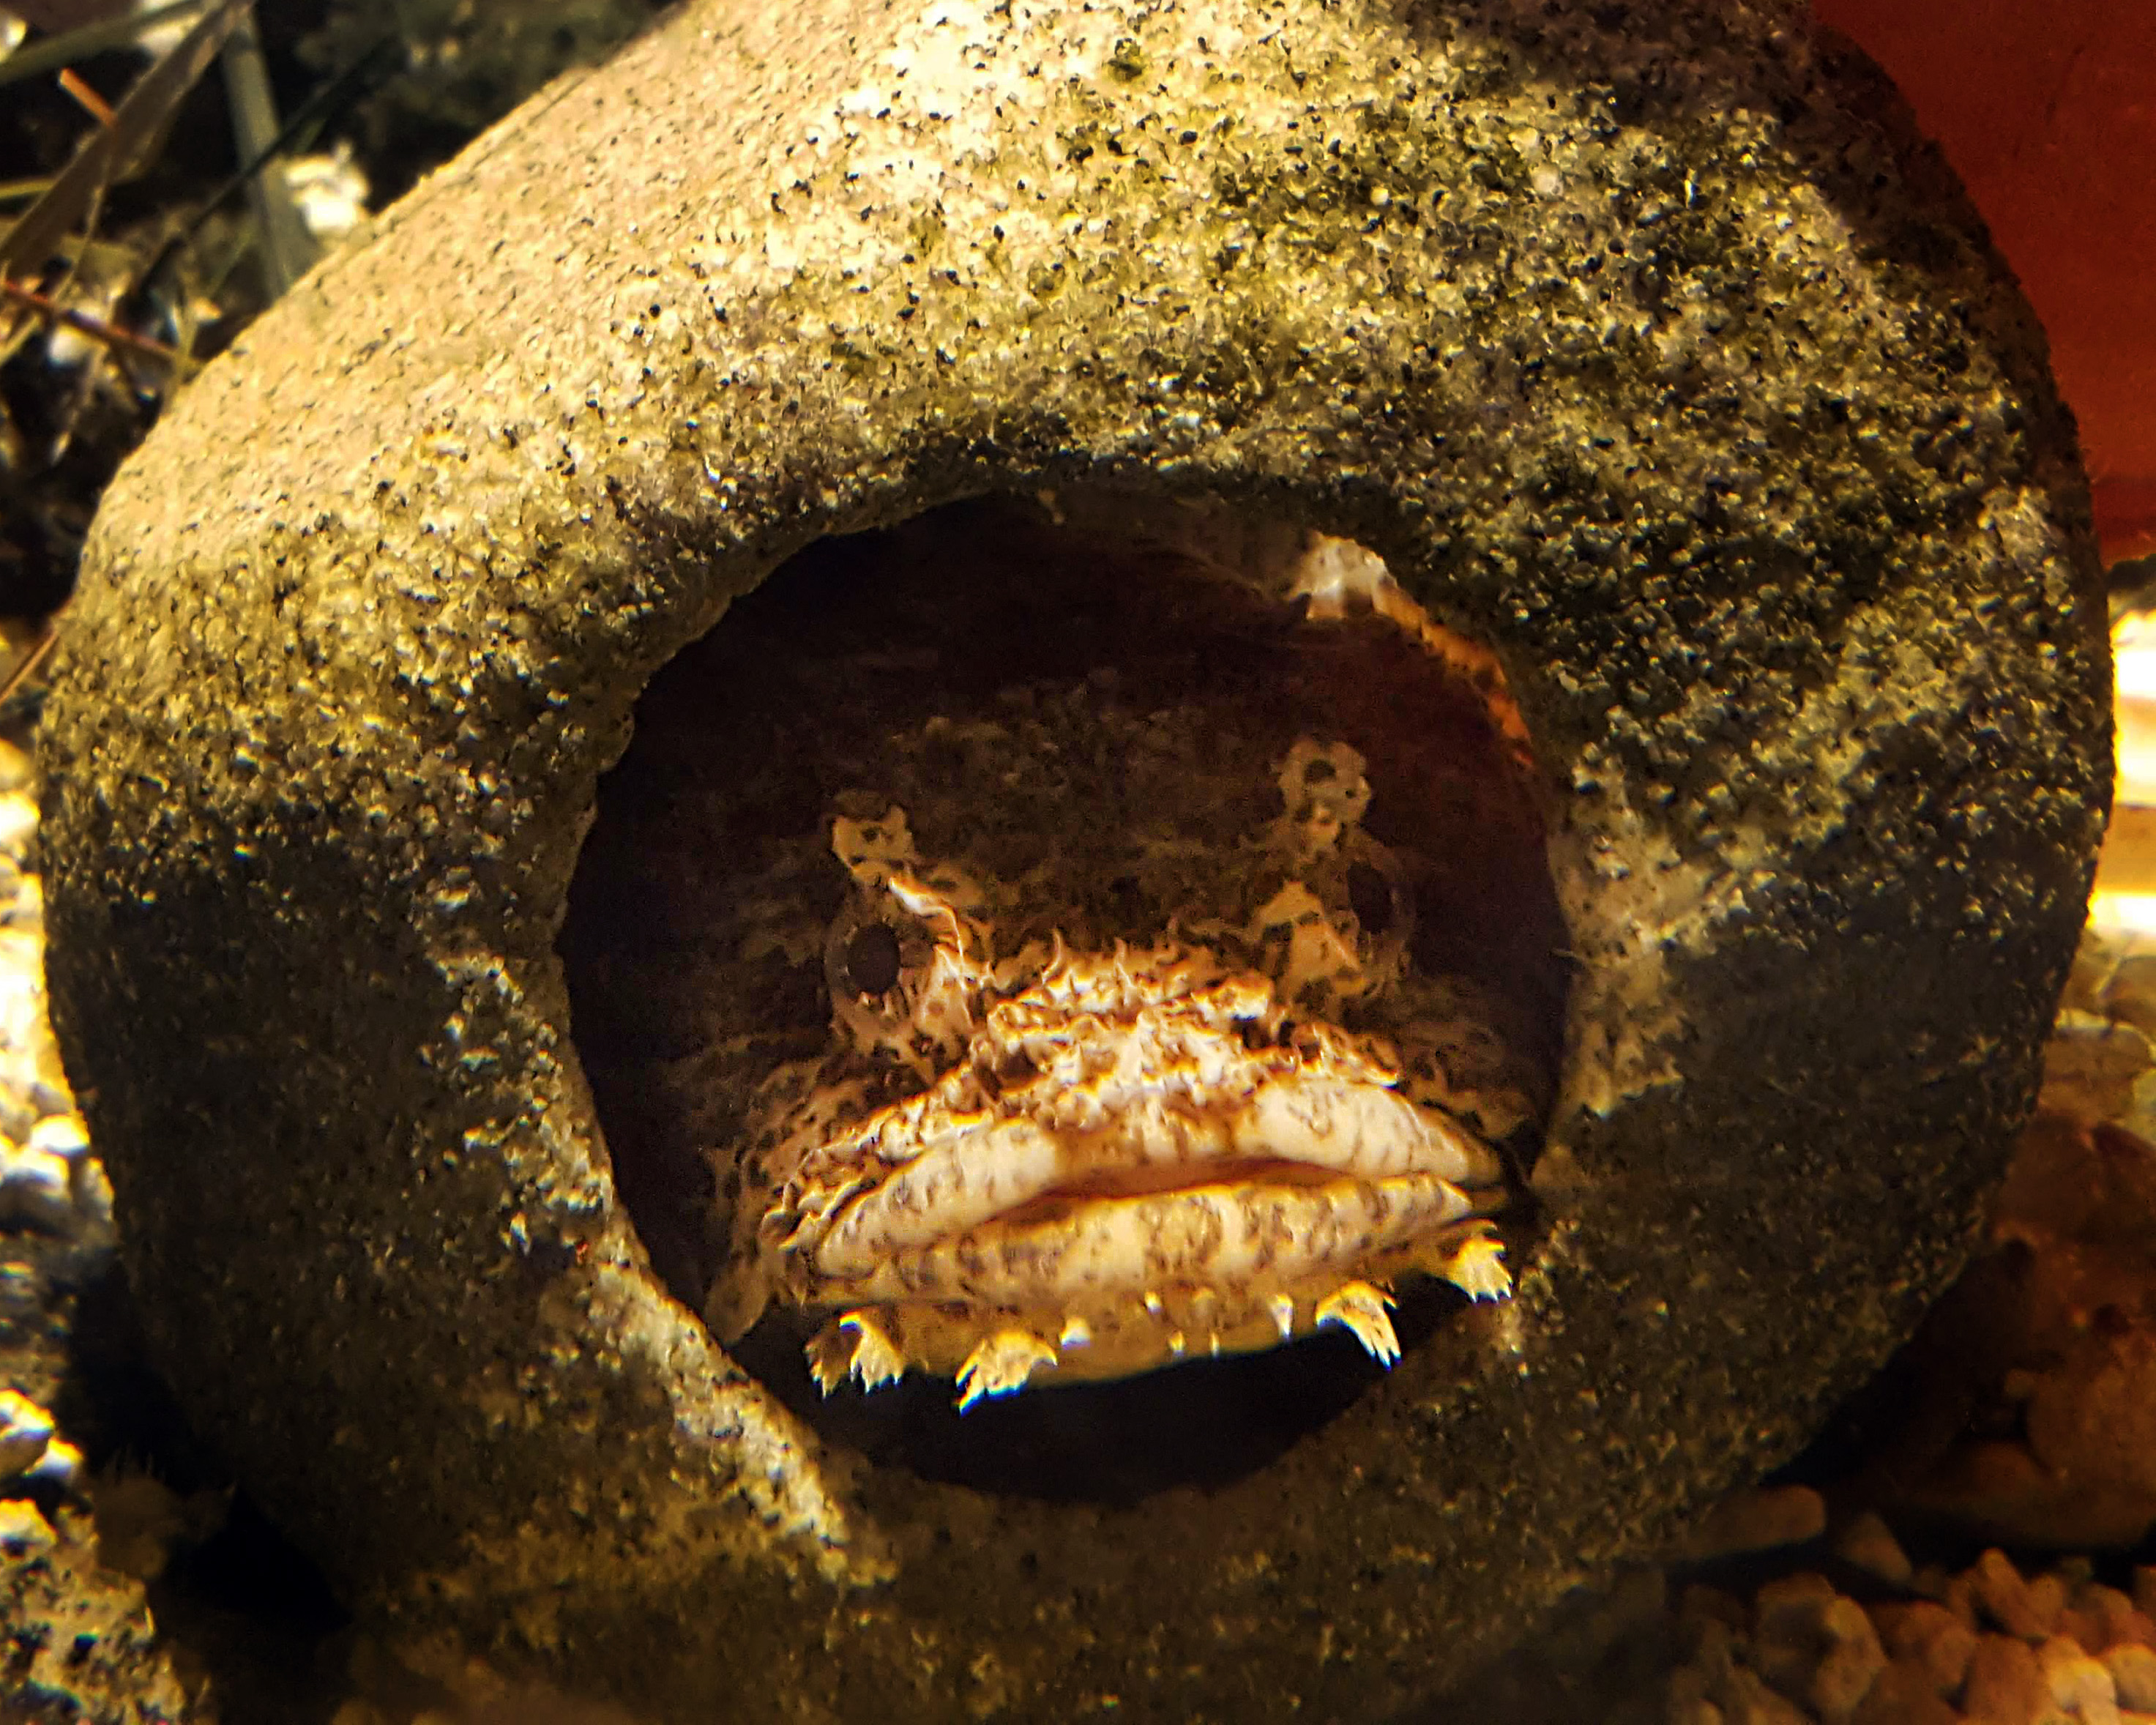 Find the oyster toadfish and other crazy cool fish at the aquarium this January